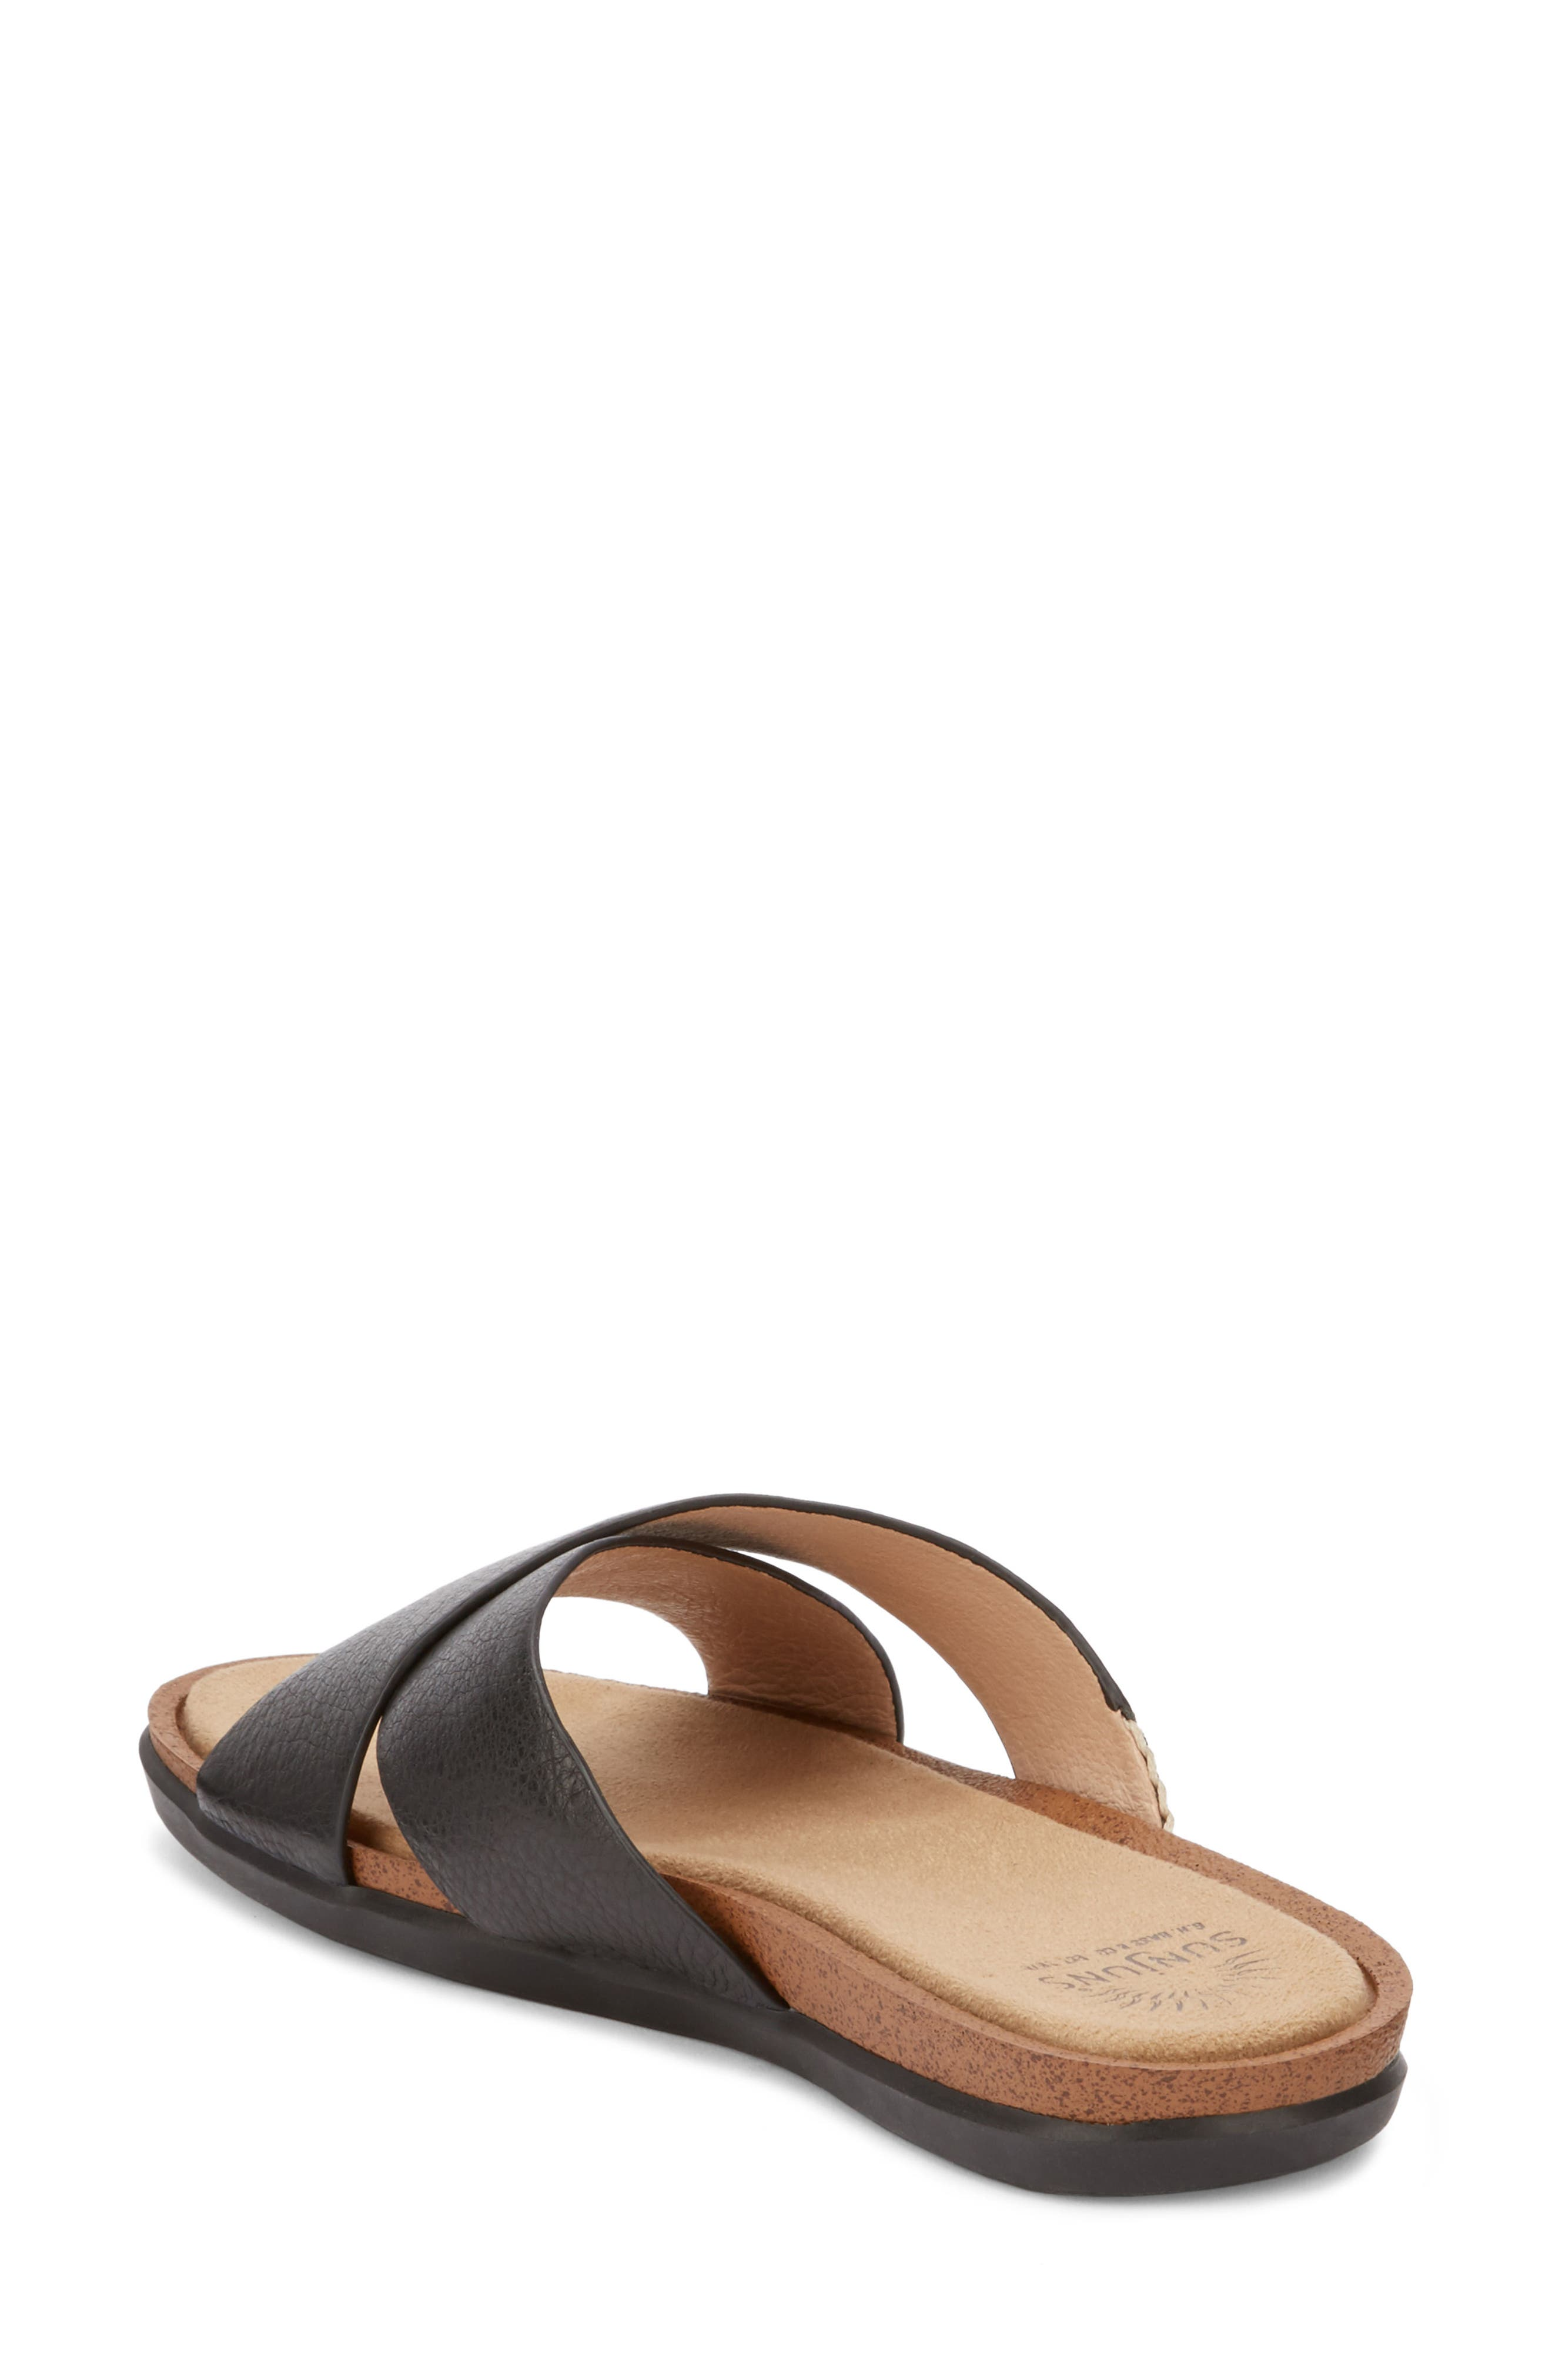 Stella Slide Sandal,                             Alternate thumbnail 2, color,                             BLACK LEATHER